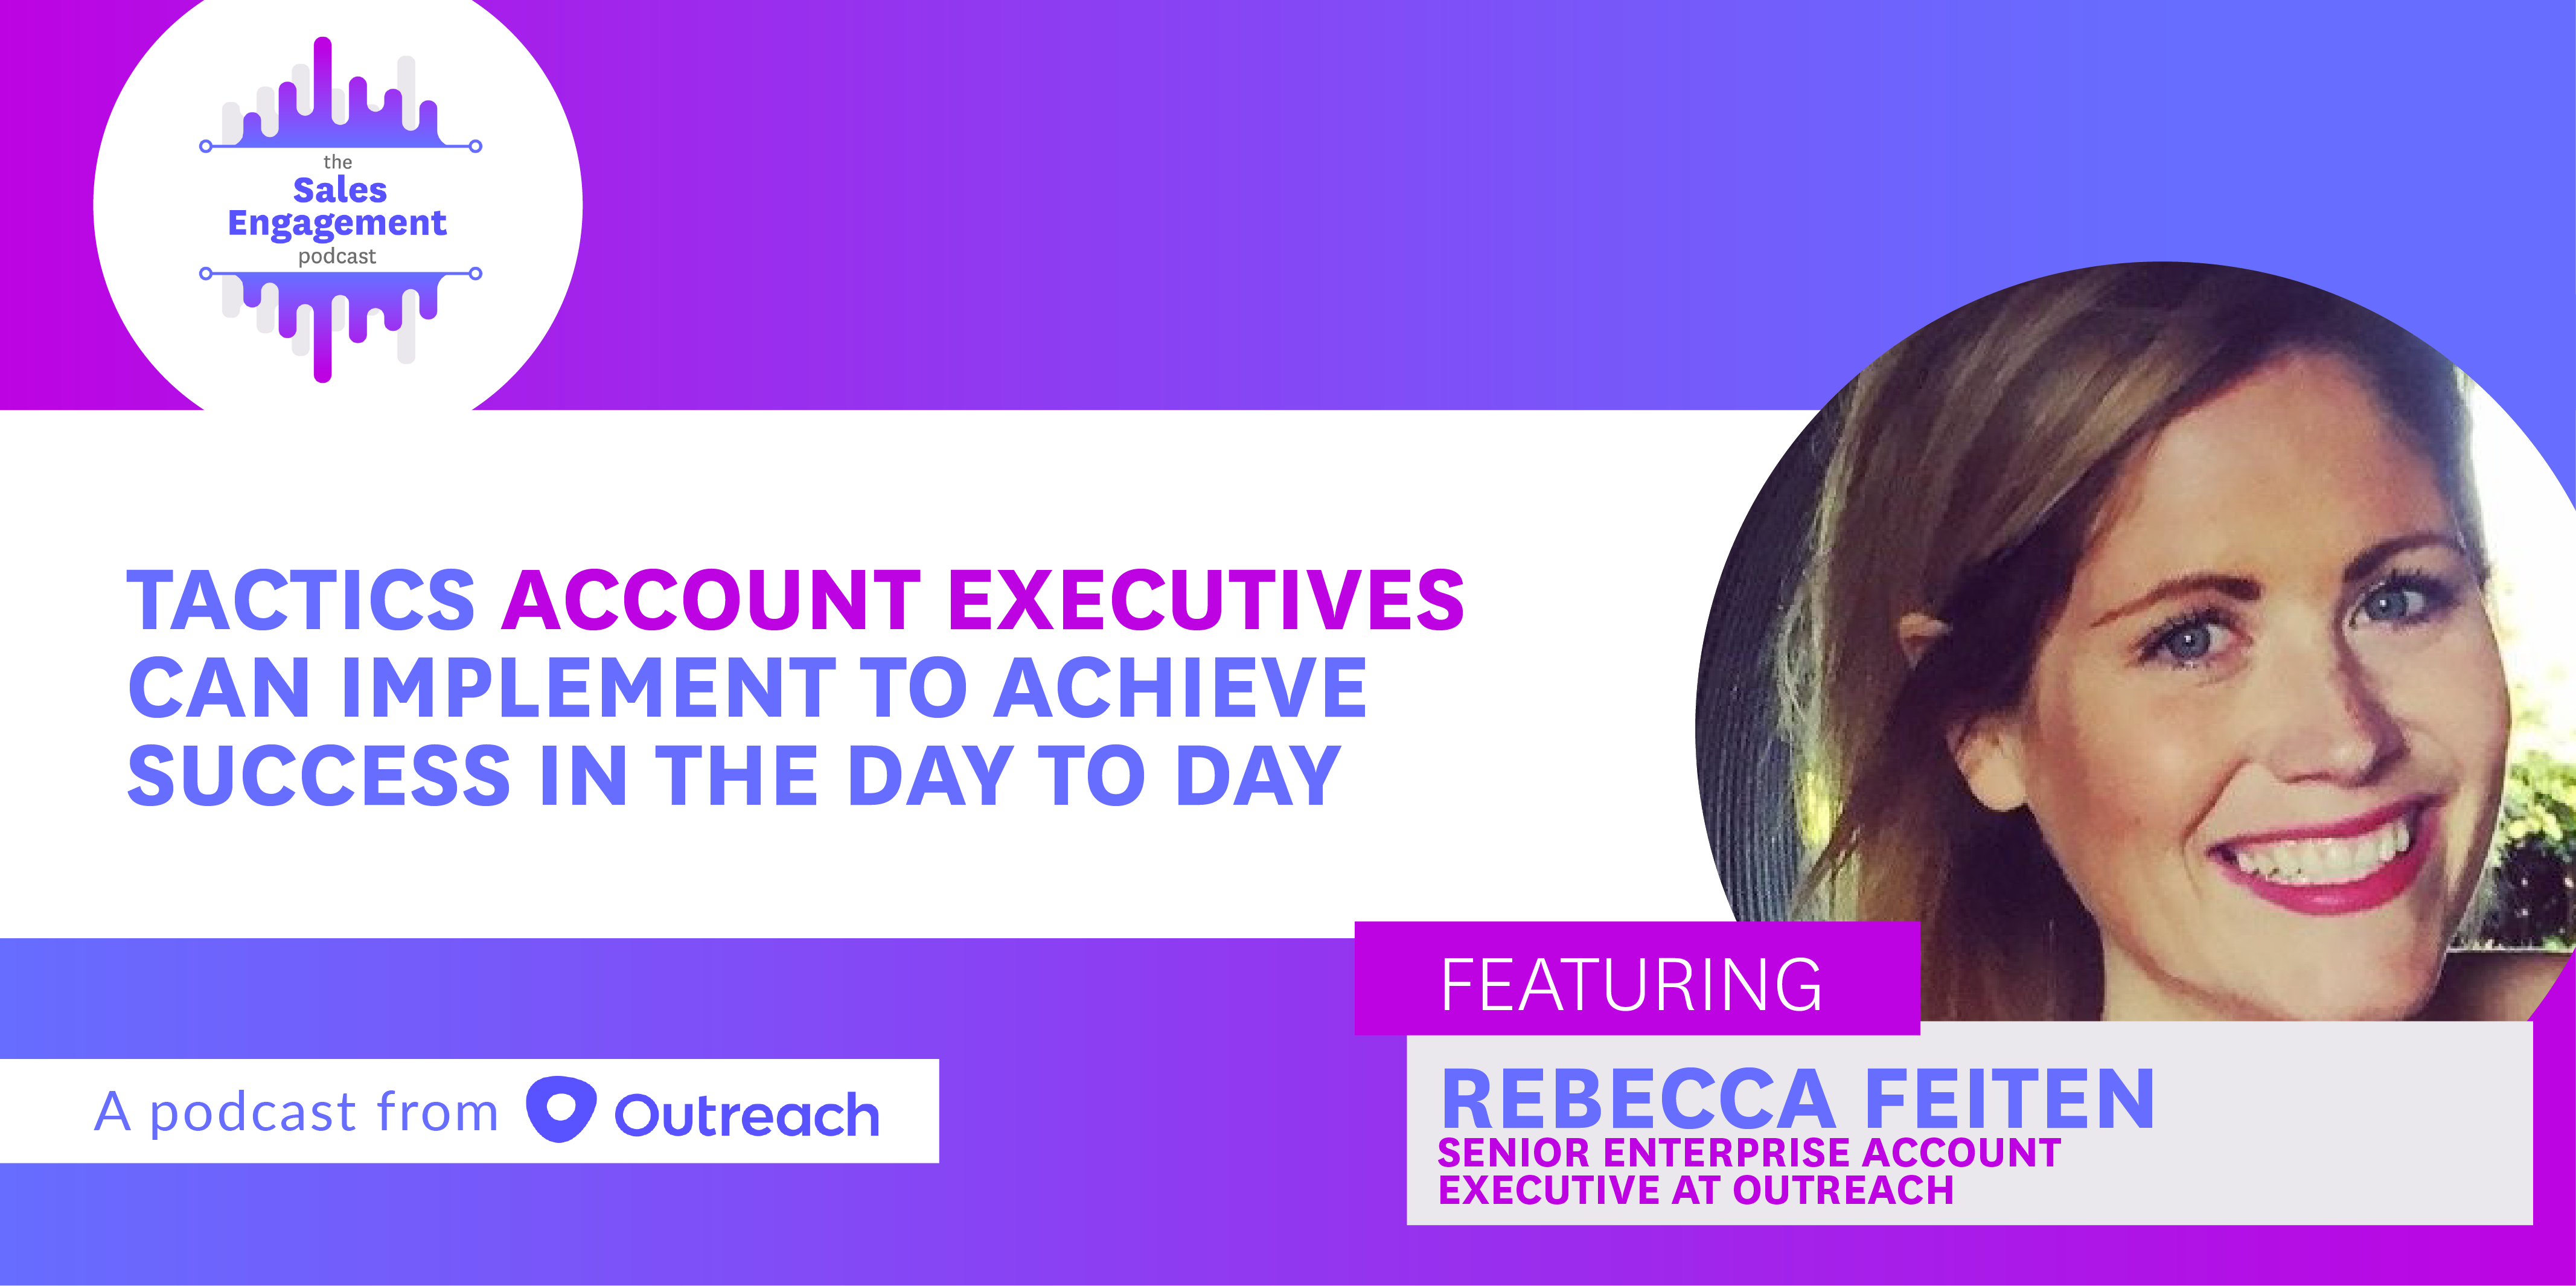 The_Sales_Engagement_Podcast_Ep_90_Rebecca_Dausch_Outreach-01.png#asset:9821